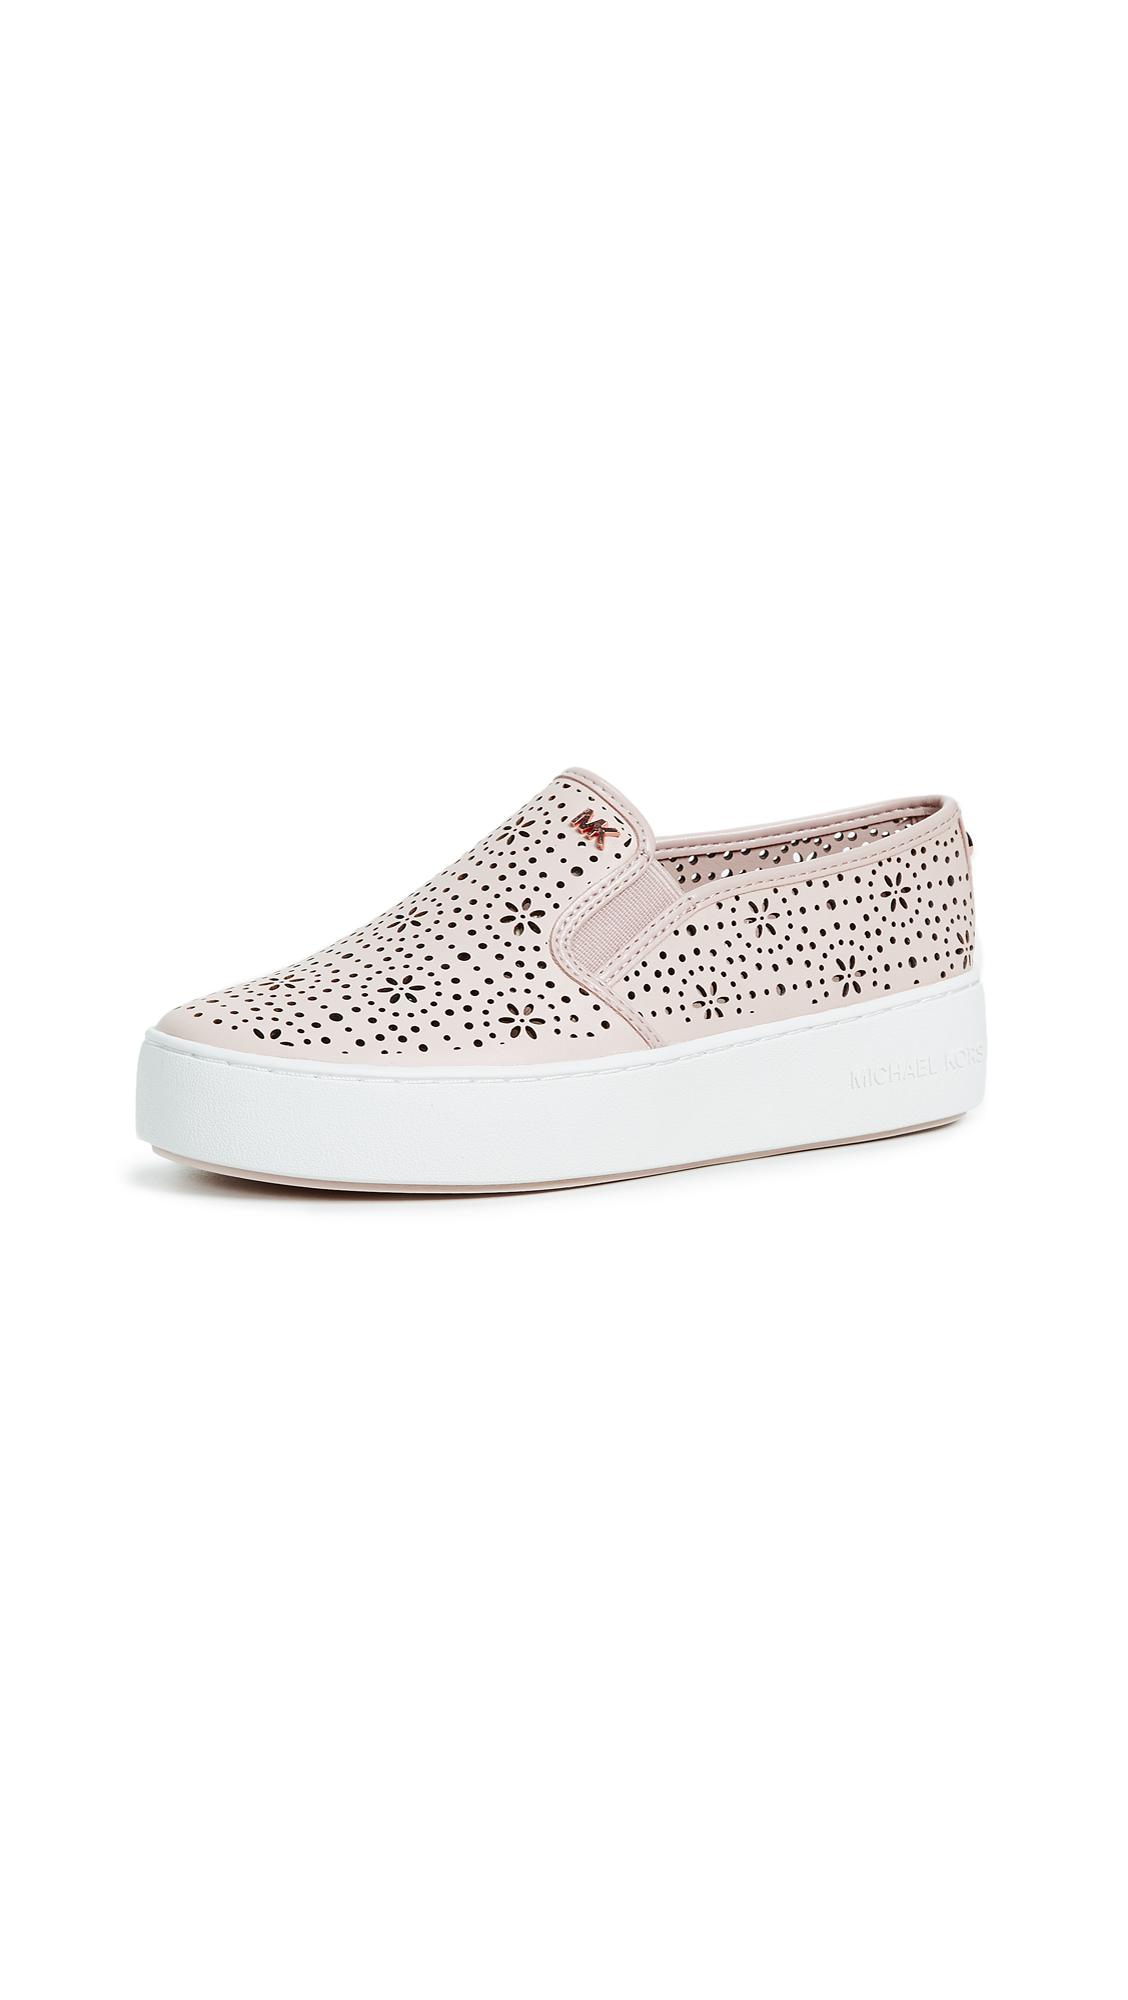 MICHAEL Michael Kors Leather Trent Slip On Sneakers